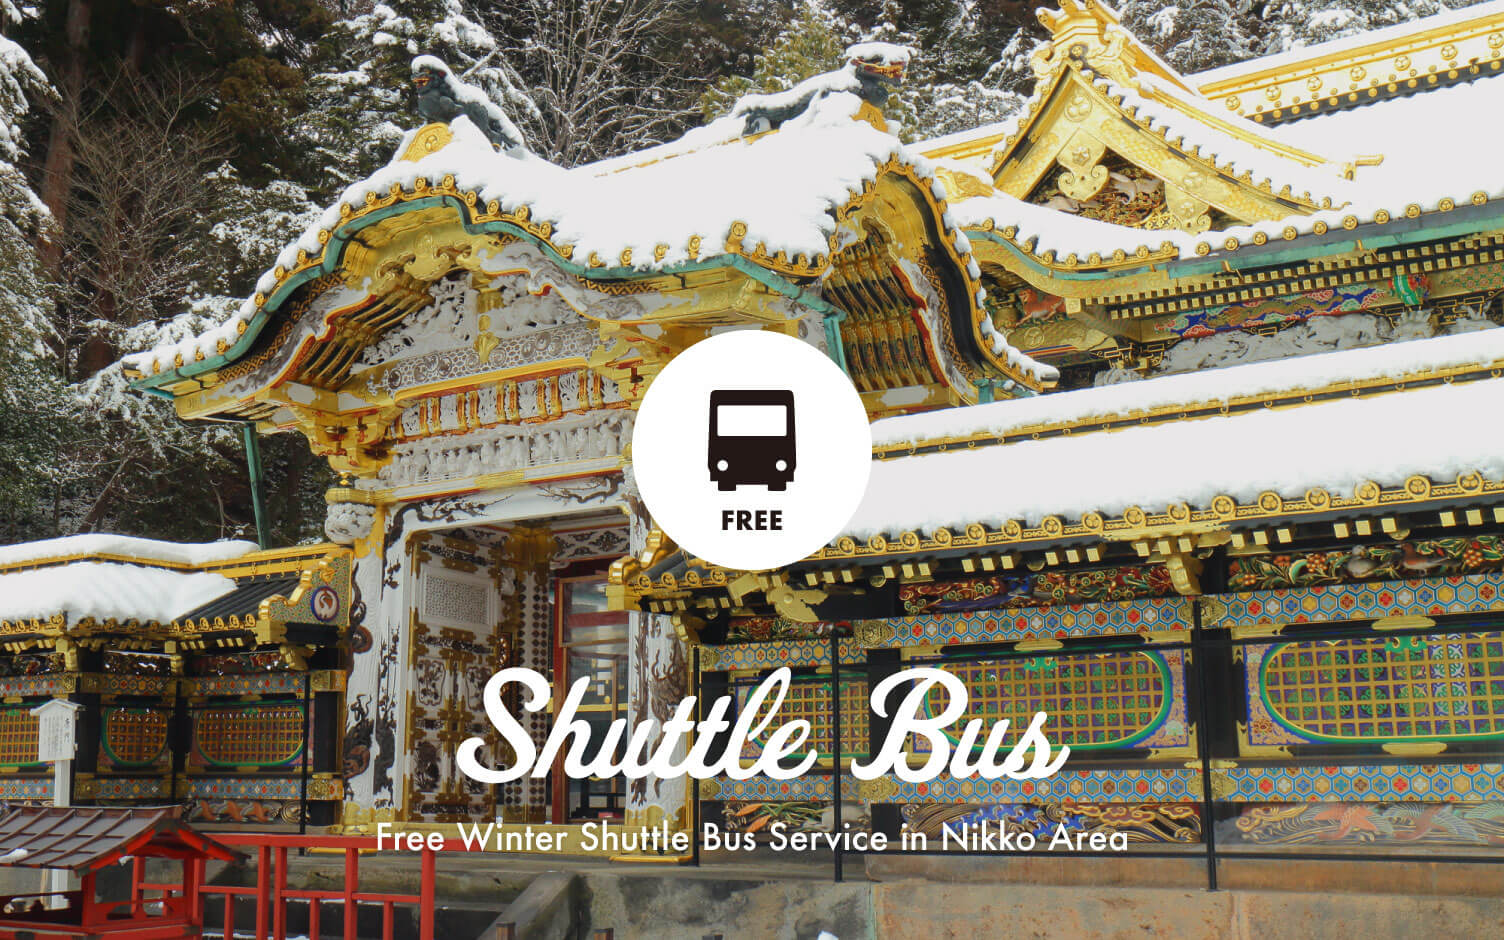 Free Winter Shuttle Bus Service in Nikko Area